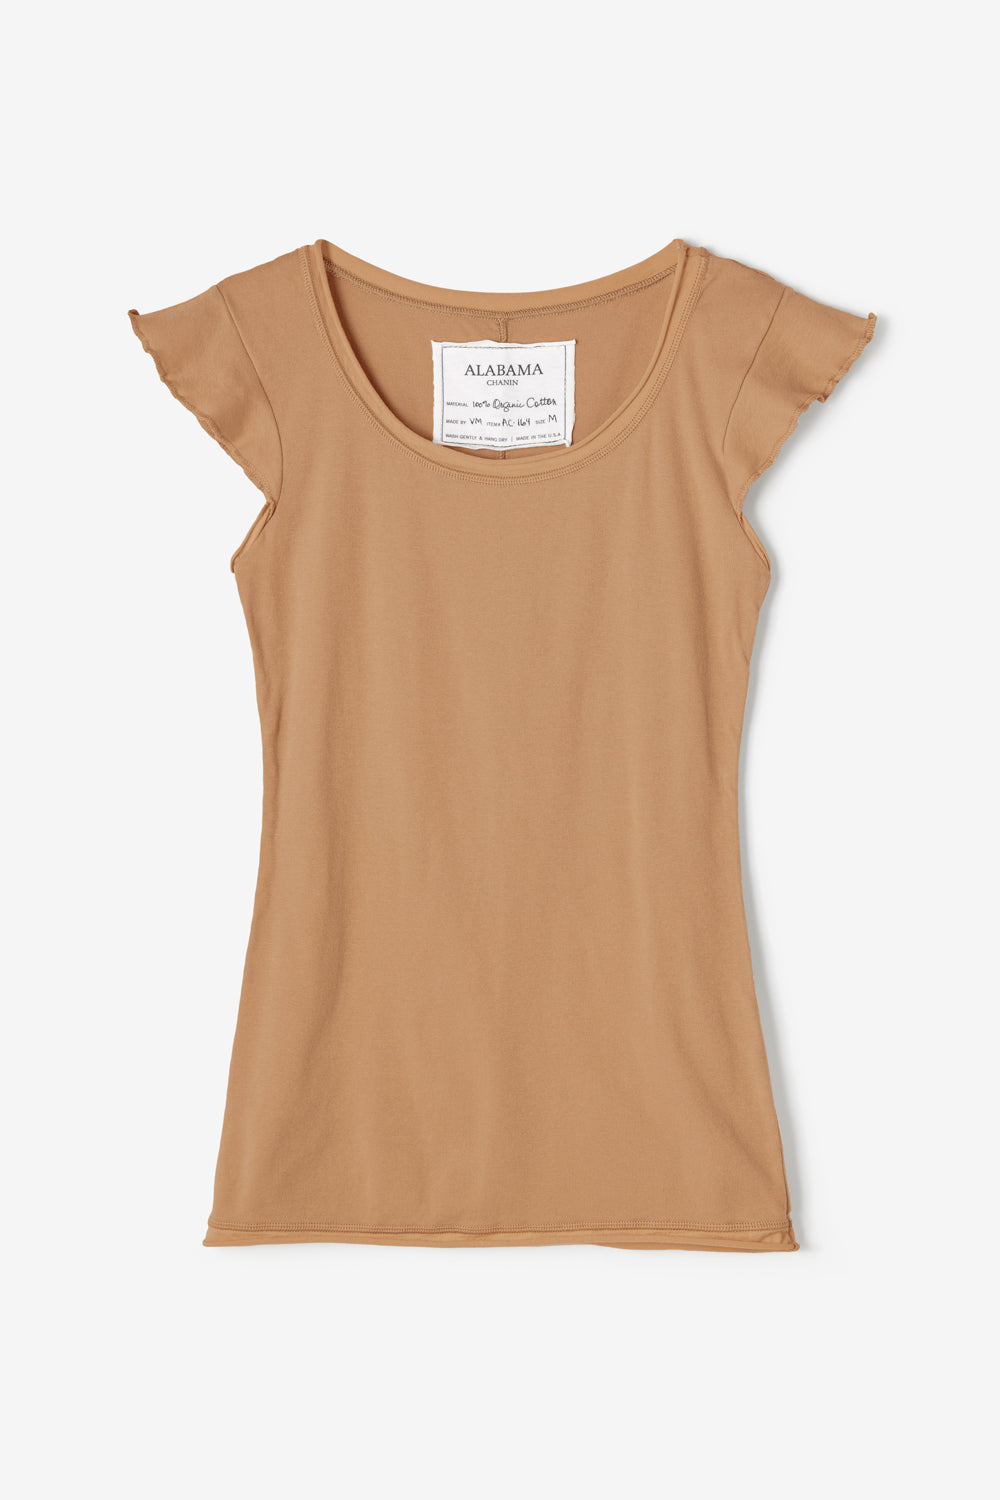 Alabama Chanin Felicity Top Rib Scoop Top with Flutter Sleeves in Organic Cotton